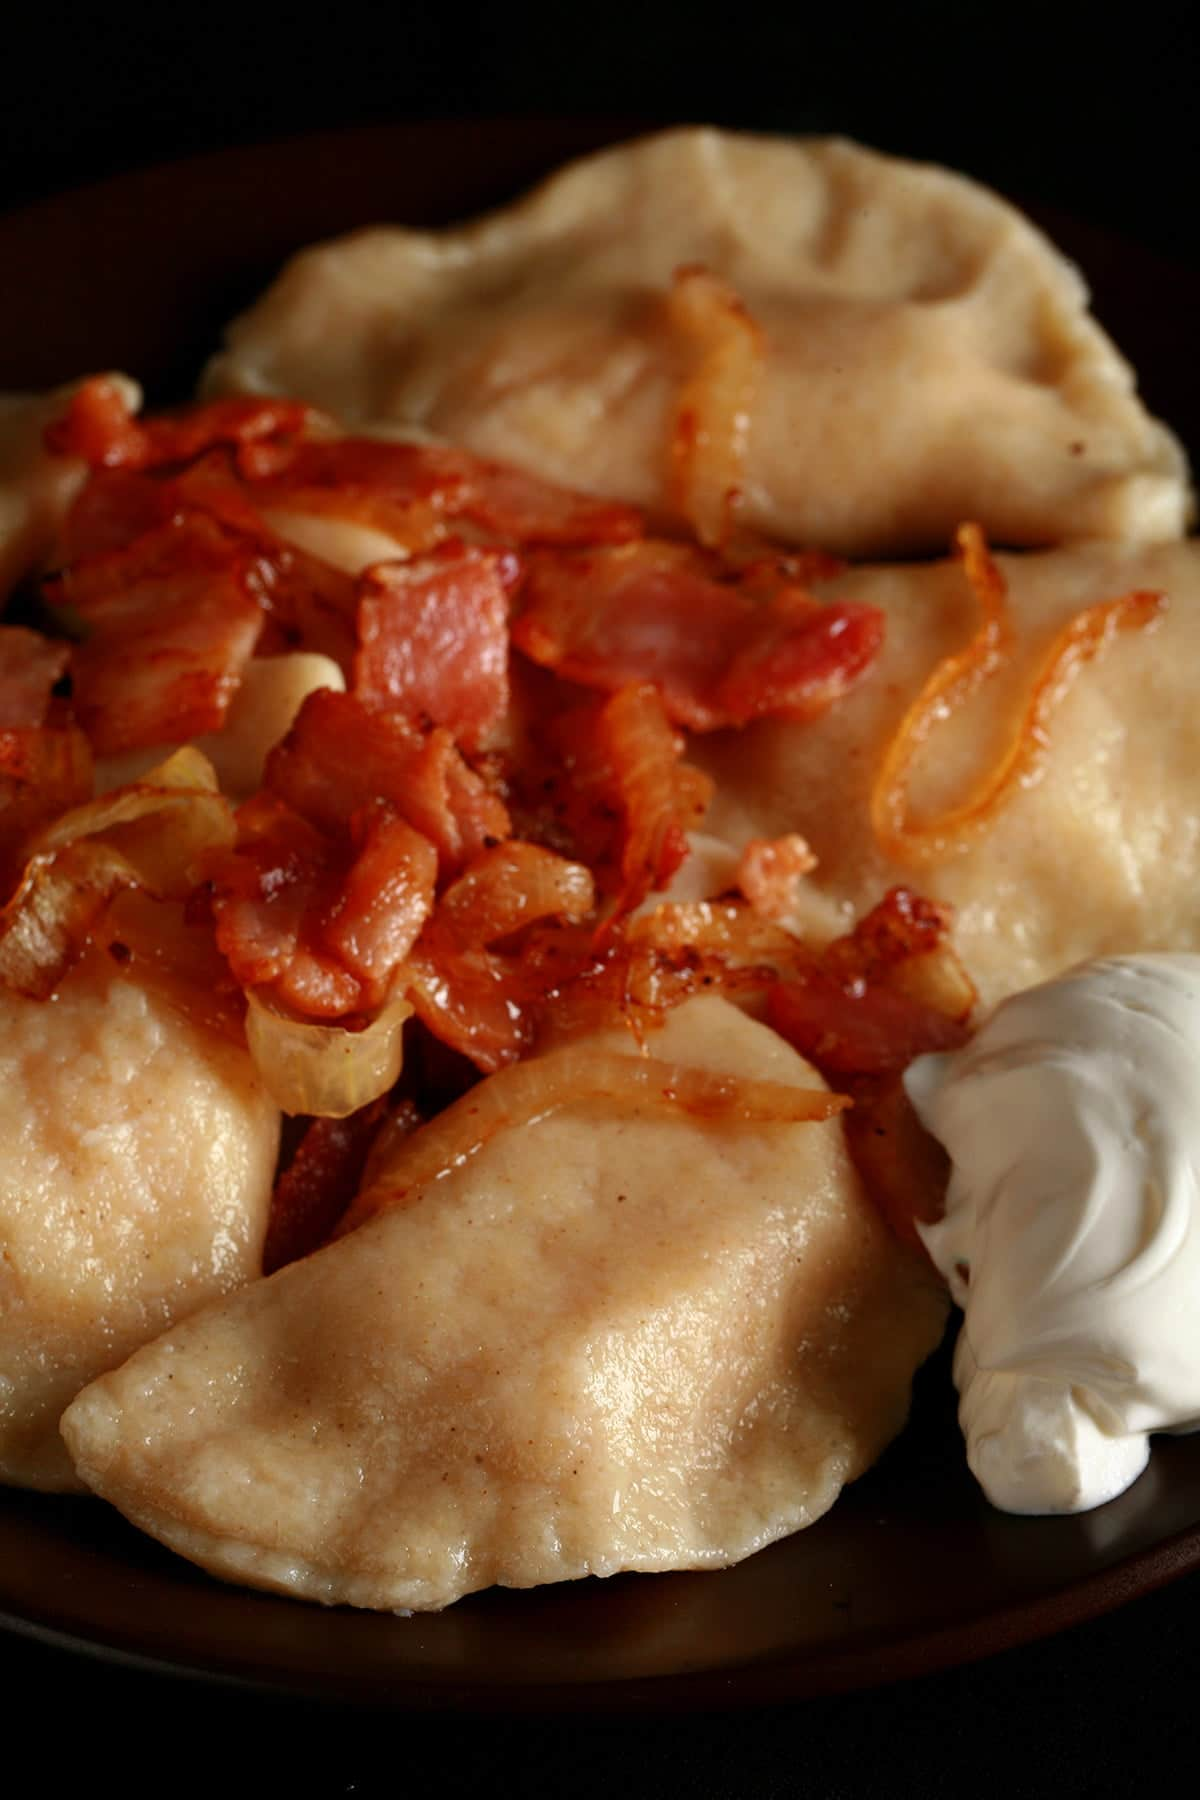 A plate of homemade perogies - Ukrainian dumplings filled with cheesy potatoes. They are pictured with pieces of bacon on top, and a scoop of sour cream on the side.